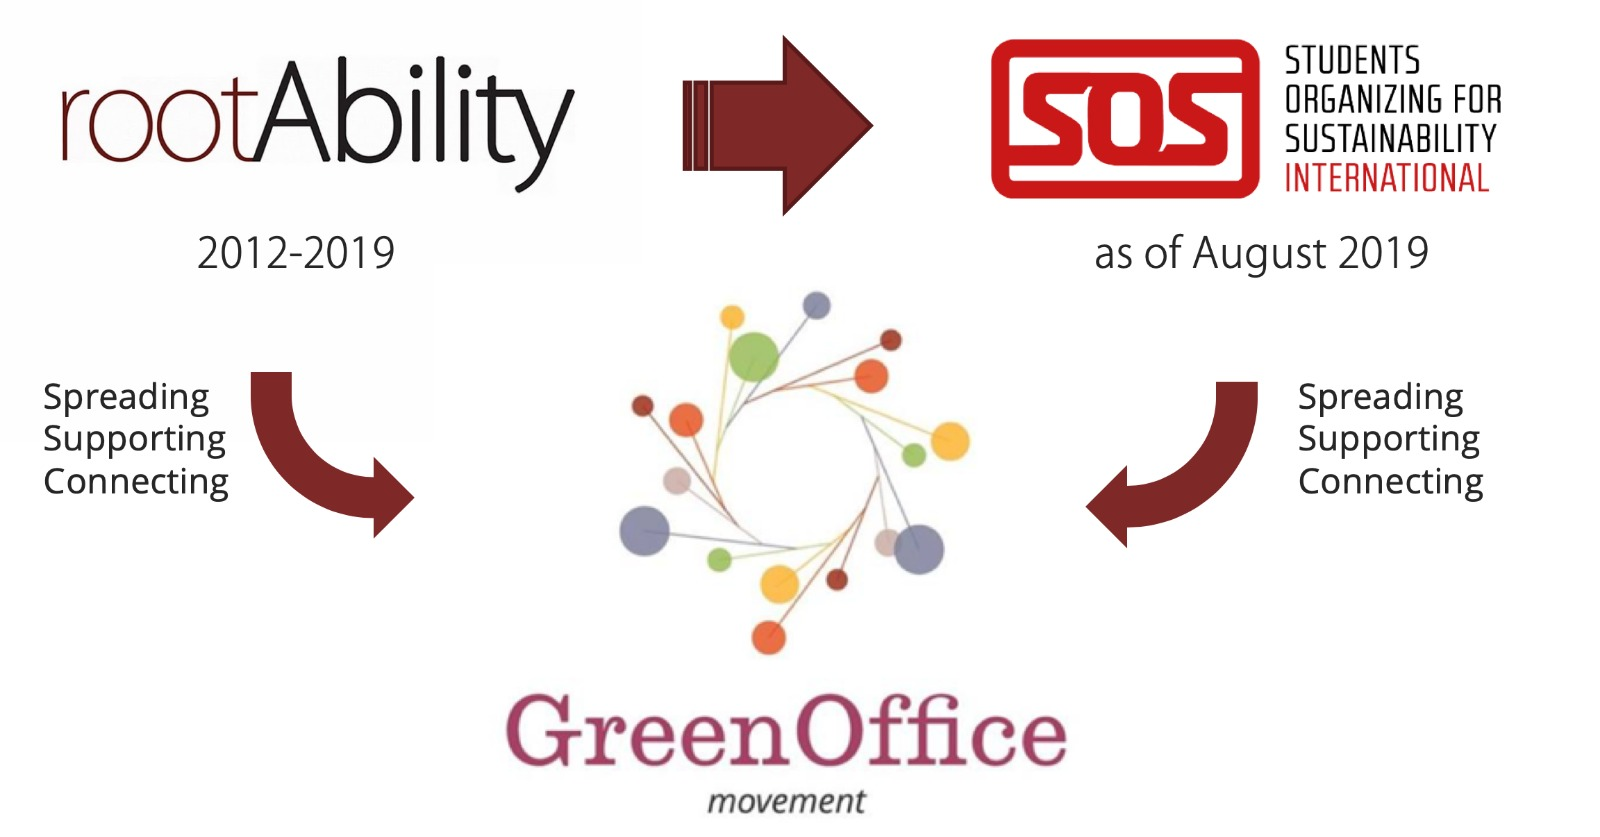 rootAbility and the Green Office Movement become part of Students Organizing for Sustainability (SOS)